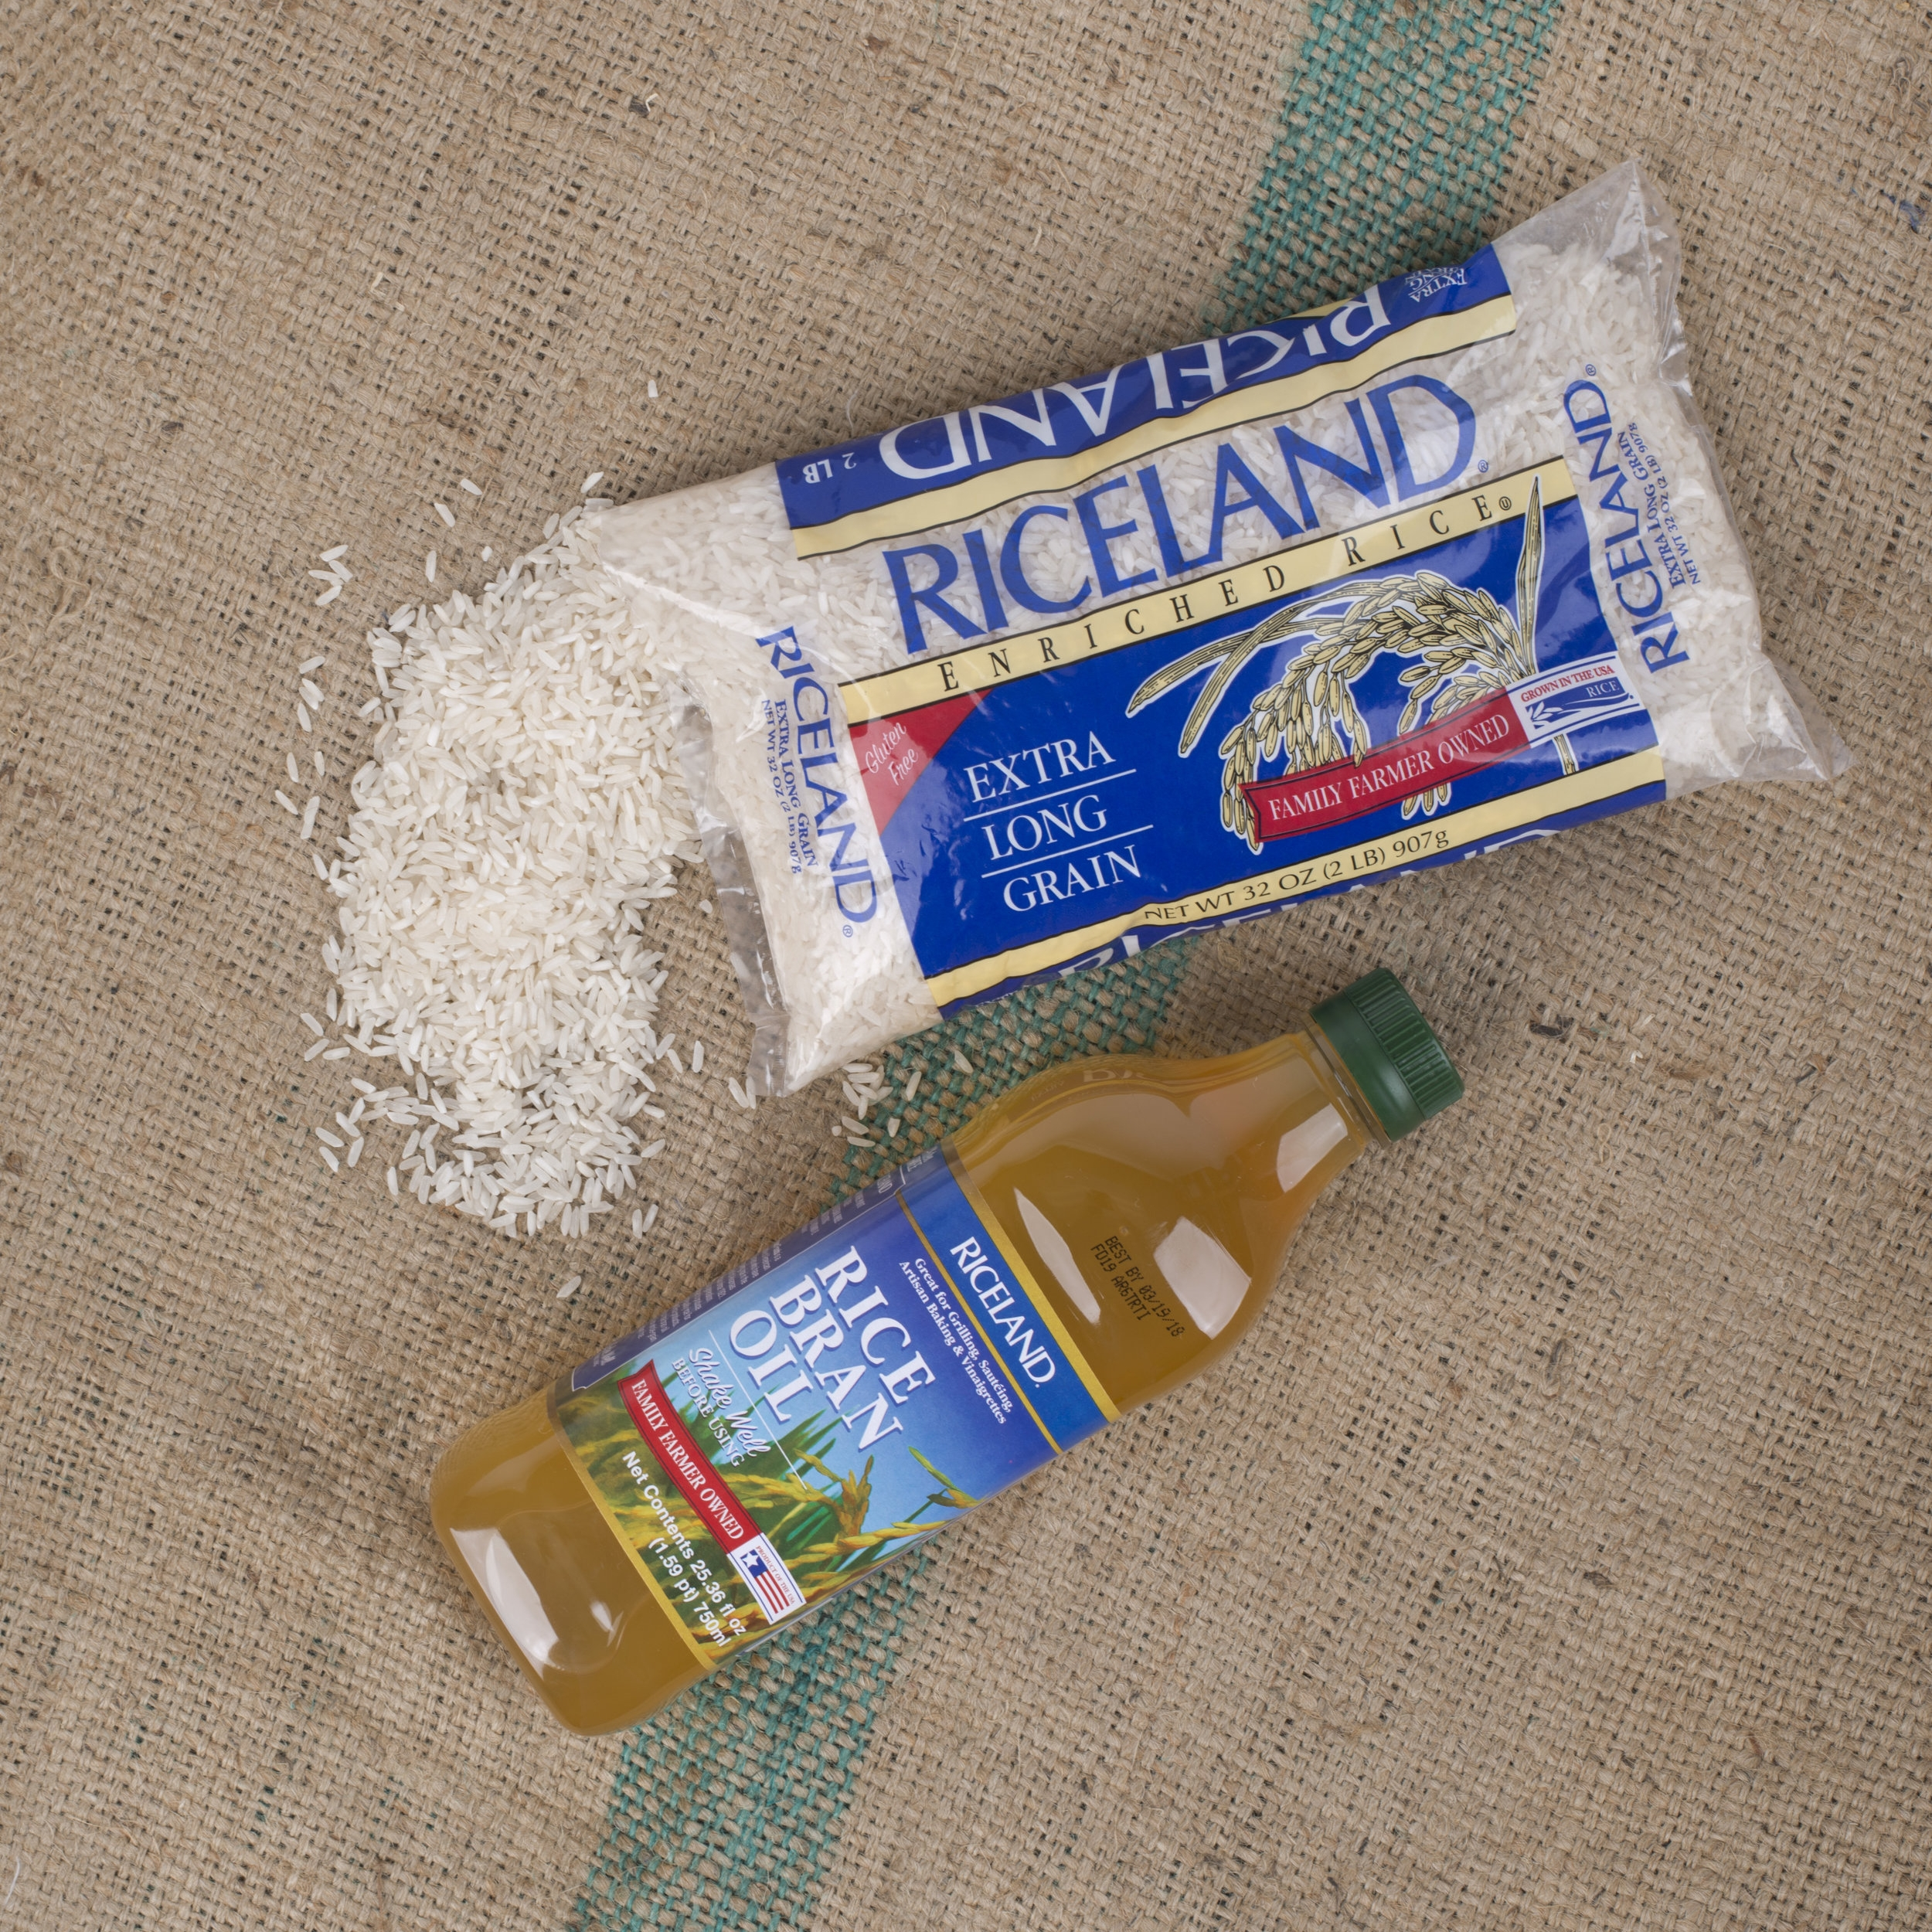 Riceland rice bran oil makes a great Roux